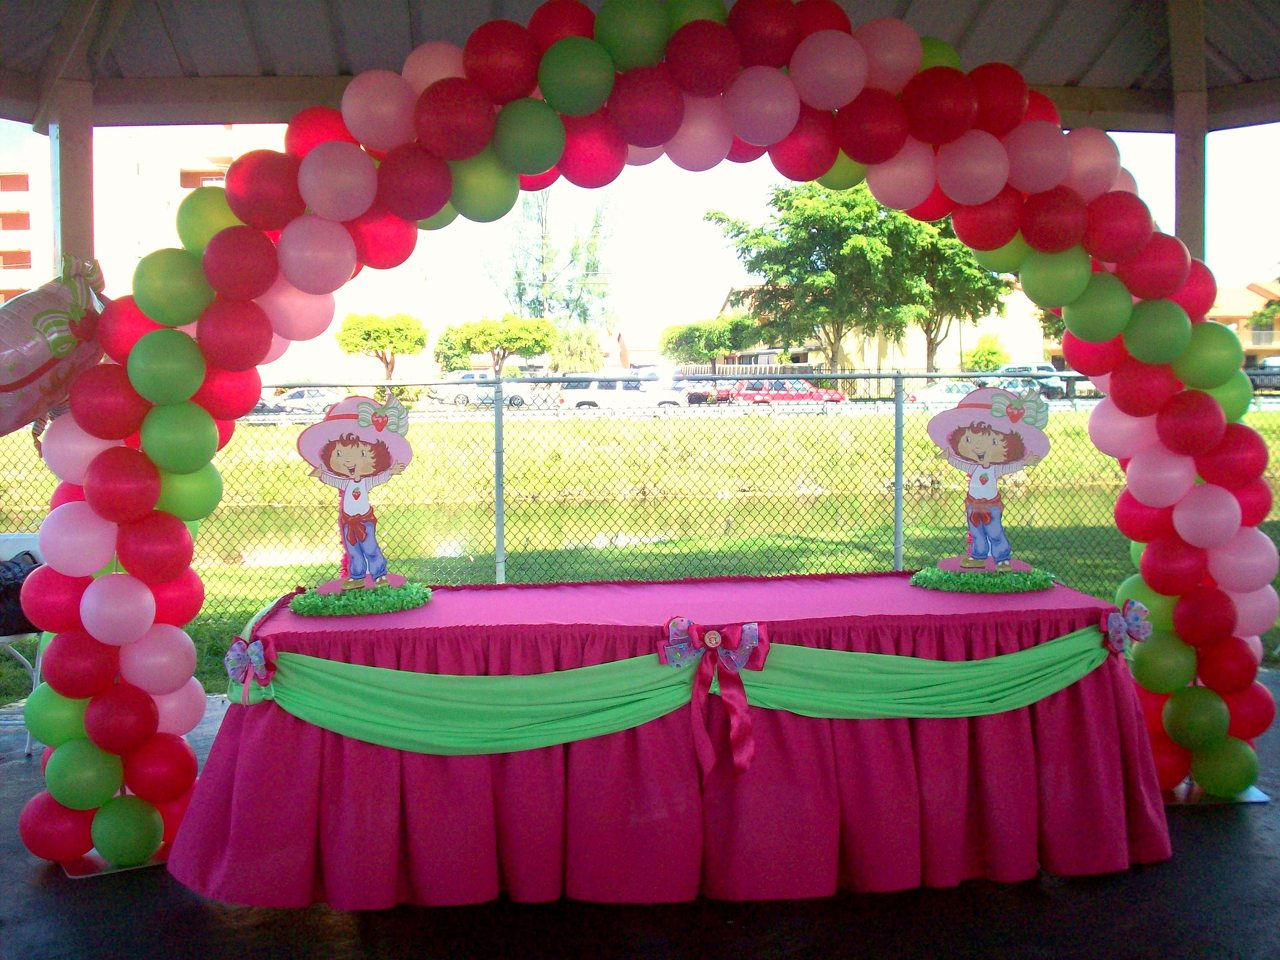 Strawberry Shortcake Decorations Baby Shower Baby Shower Ideas for ...